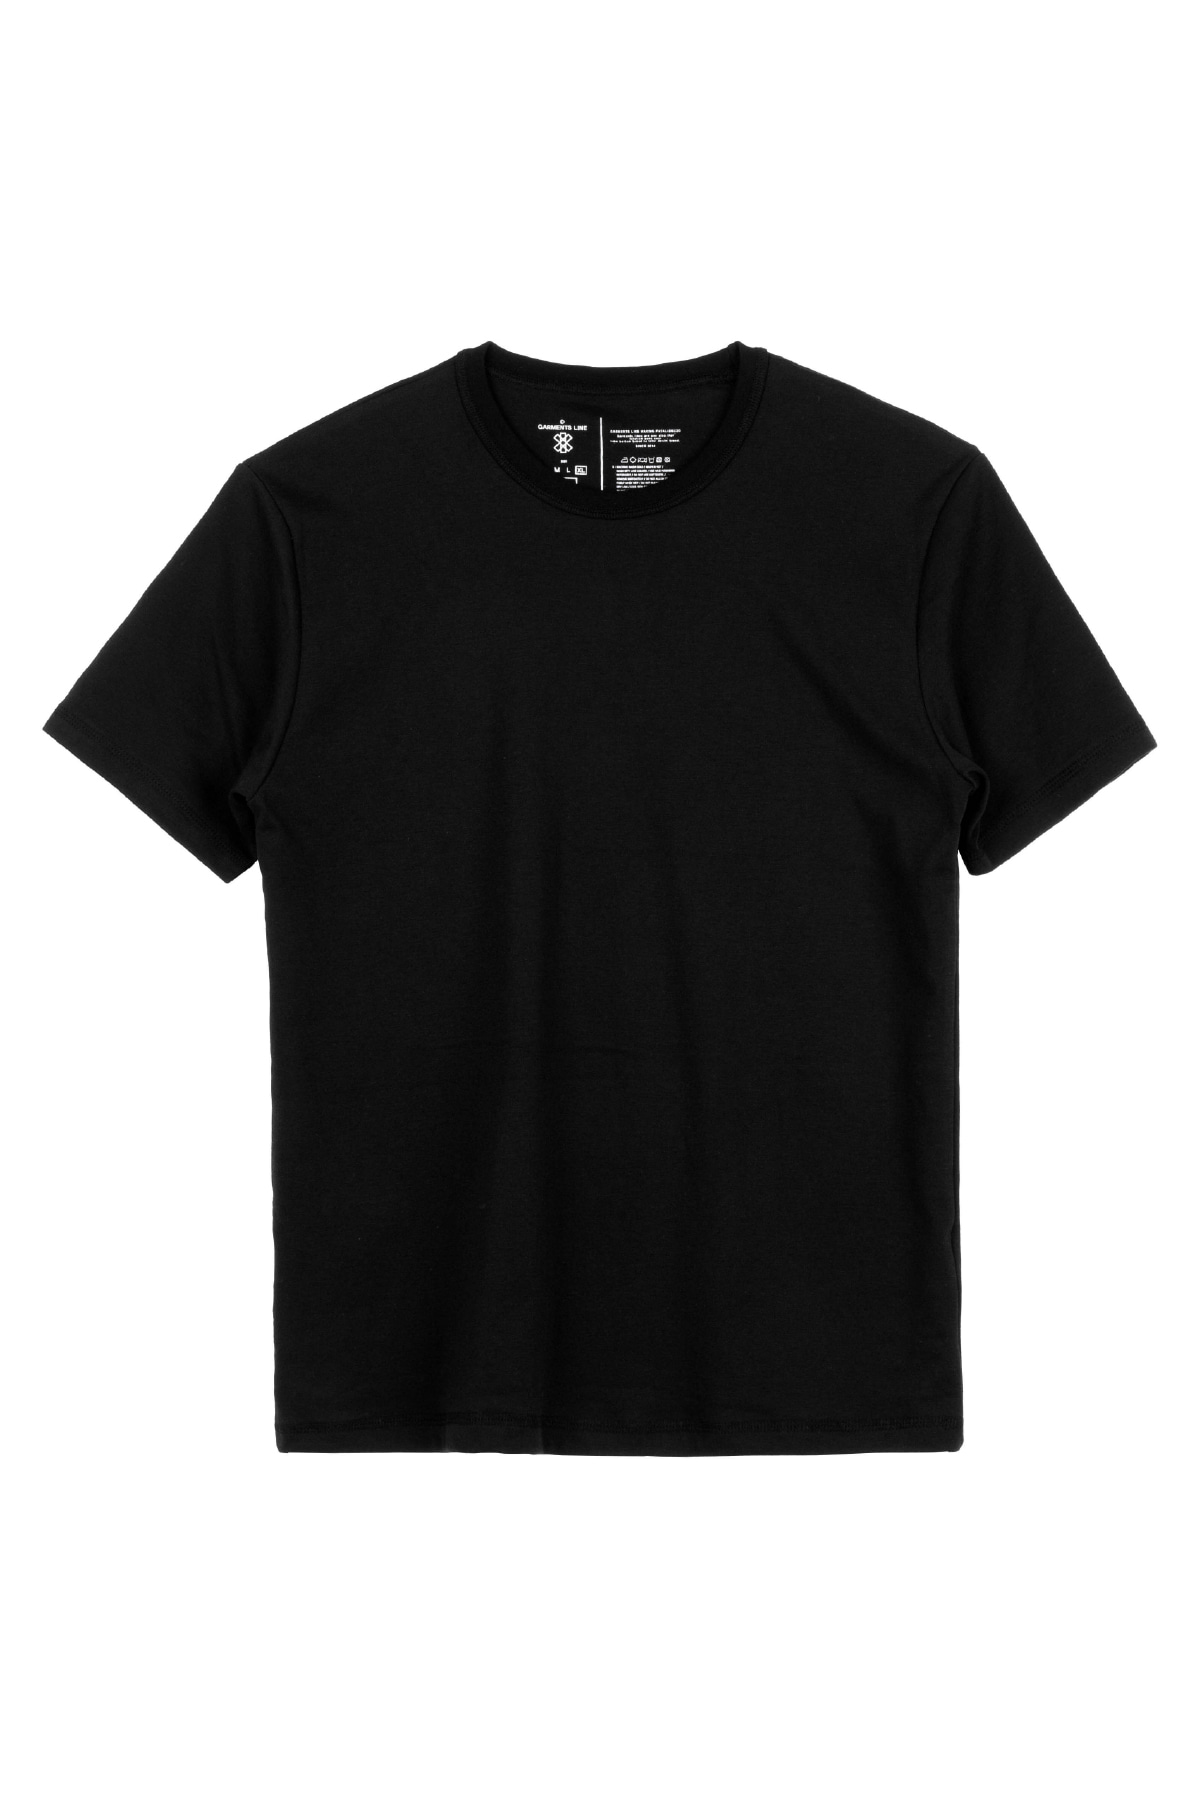 #G018 GML-Semi over Fit T-shirt (black)